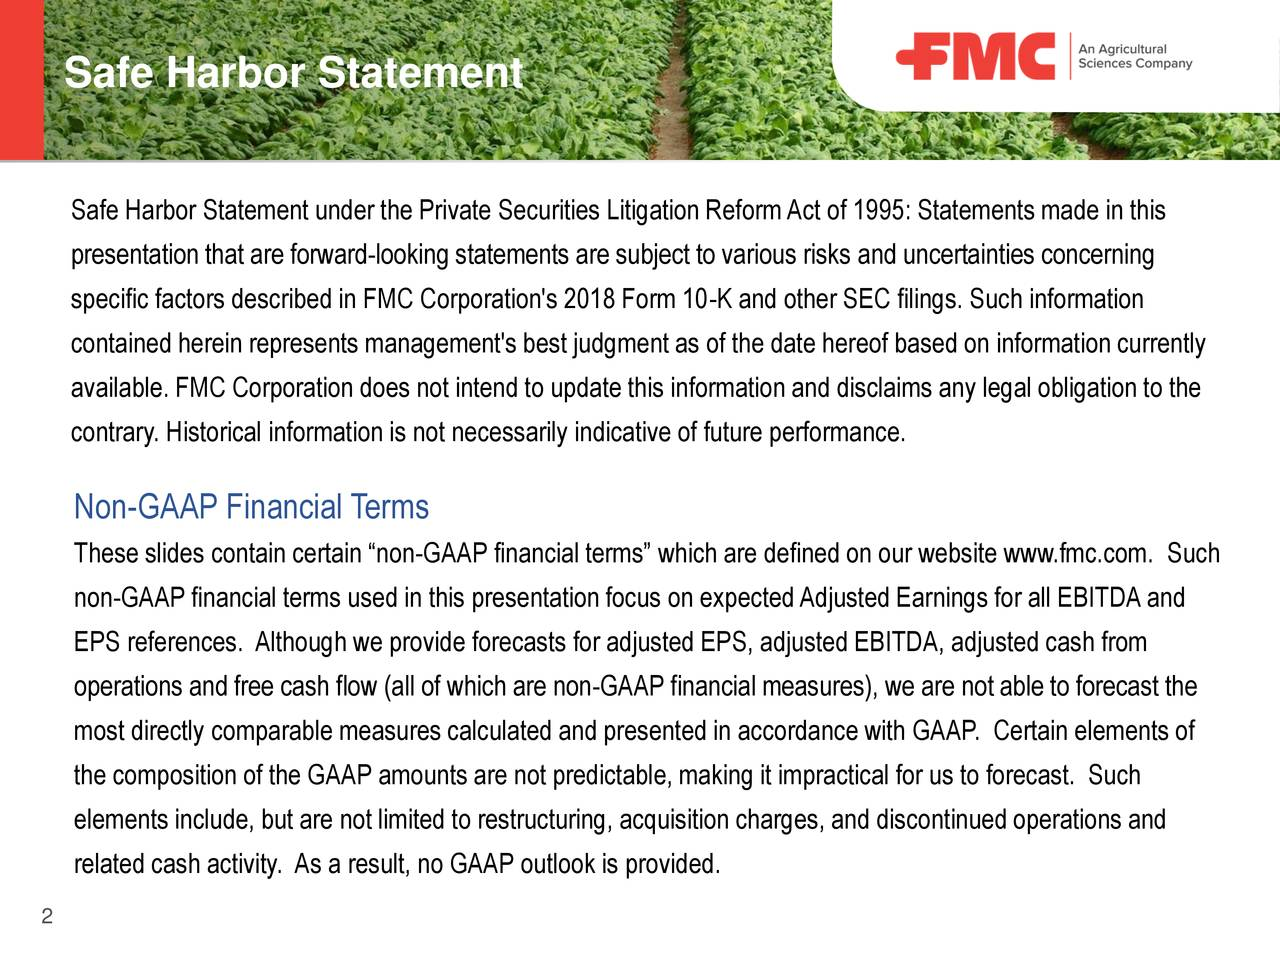 "under the Private Securities Litigation ReformAct of 1995: Statements made in this presentation that are forward-looking statements are subject to various risks and uncertainties concerning specific factors described in FMC Corporation's 2018 Form 10-K and other SEC filings. Such information contained herein represents management's best judgment as of the date hereof based on information currently available. FMC Corporation does not intend to update this information and disclaims any legal obligation to the contrary. Historical information is not necessarily indicative of future performance. Non-GAAP Financial Terms These slides contain certain ""non-GAAP financial terms"" which are defined on our website www.fmc.com. Such non-GAAP financial terms used in this presentation focus on expectedAdjusted Earnings for all EBITDAand EPS references. Although we provide forecasts for adjusted EPS, adjusted EBITDA, adjusted cash from operations and free cash flow (all of which are non-GAAP financial measures), we are not able to forecast the most directly comparable measures calculated and presented in accordance with GAAP. Certain elements of the composition of the GAAP amounts are not predictable, making it impractical for us to forecast. Such elements include, but are not limited to restructuring, acquisition charges, and discontinued operations and related cash activity. As a result, no GAAP outlook is provided. 2"